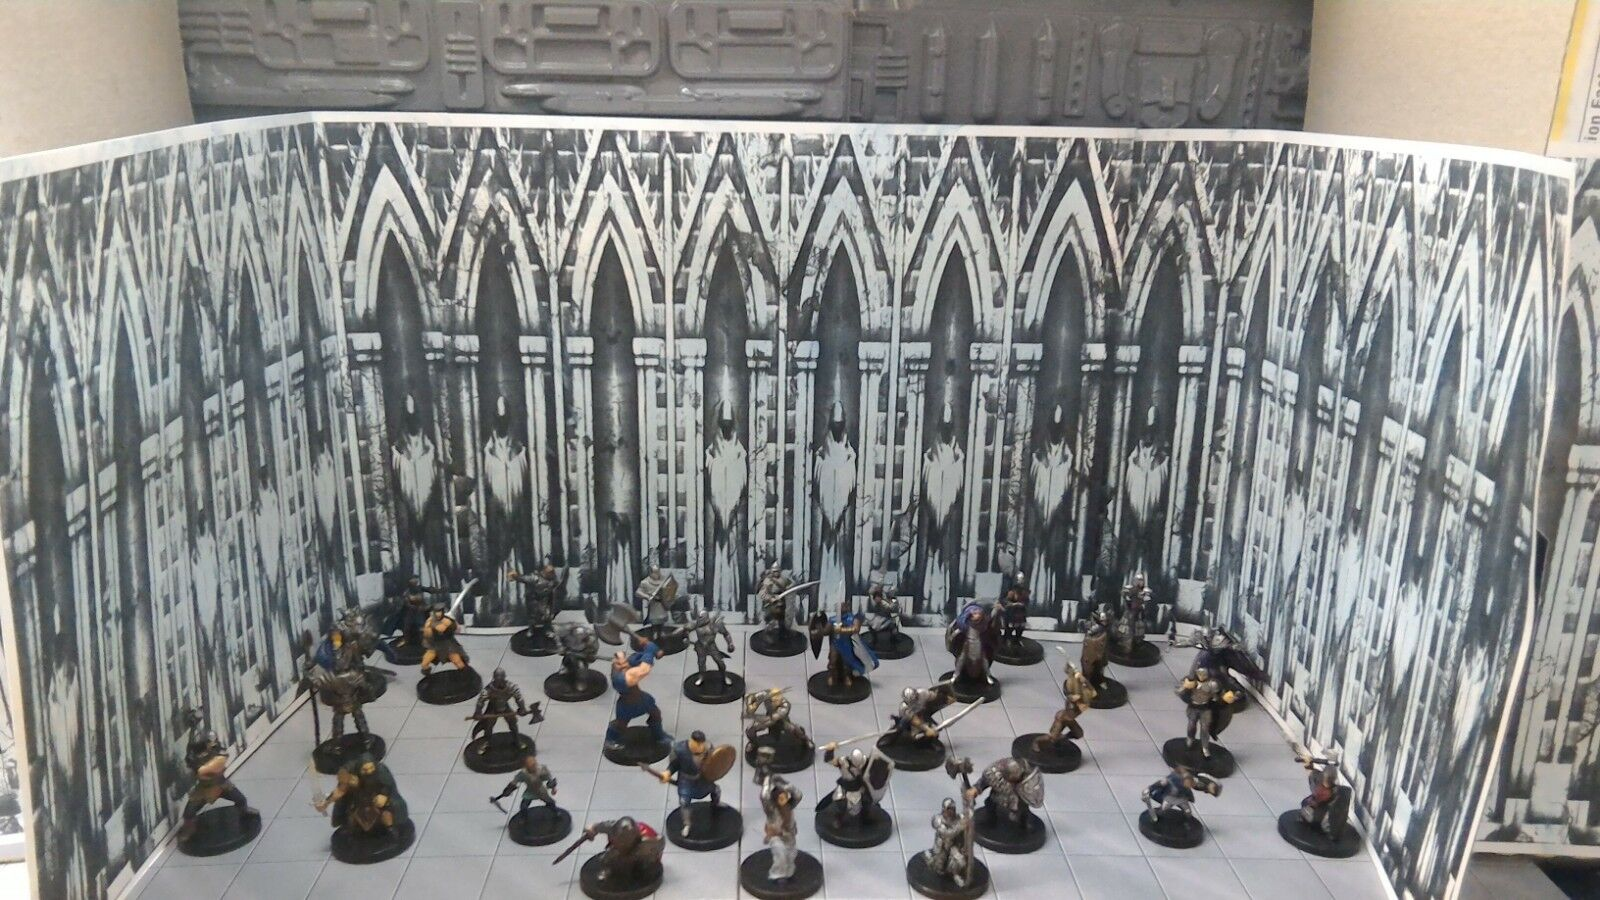 Fantasy, D&D, Pathfinder miniatures Warriors, Weapon-Masters, and Fighters